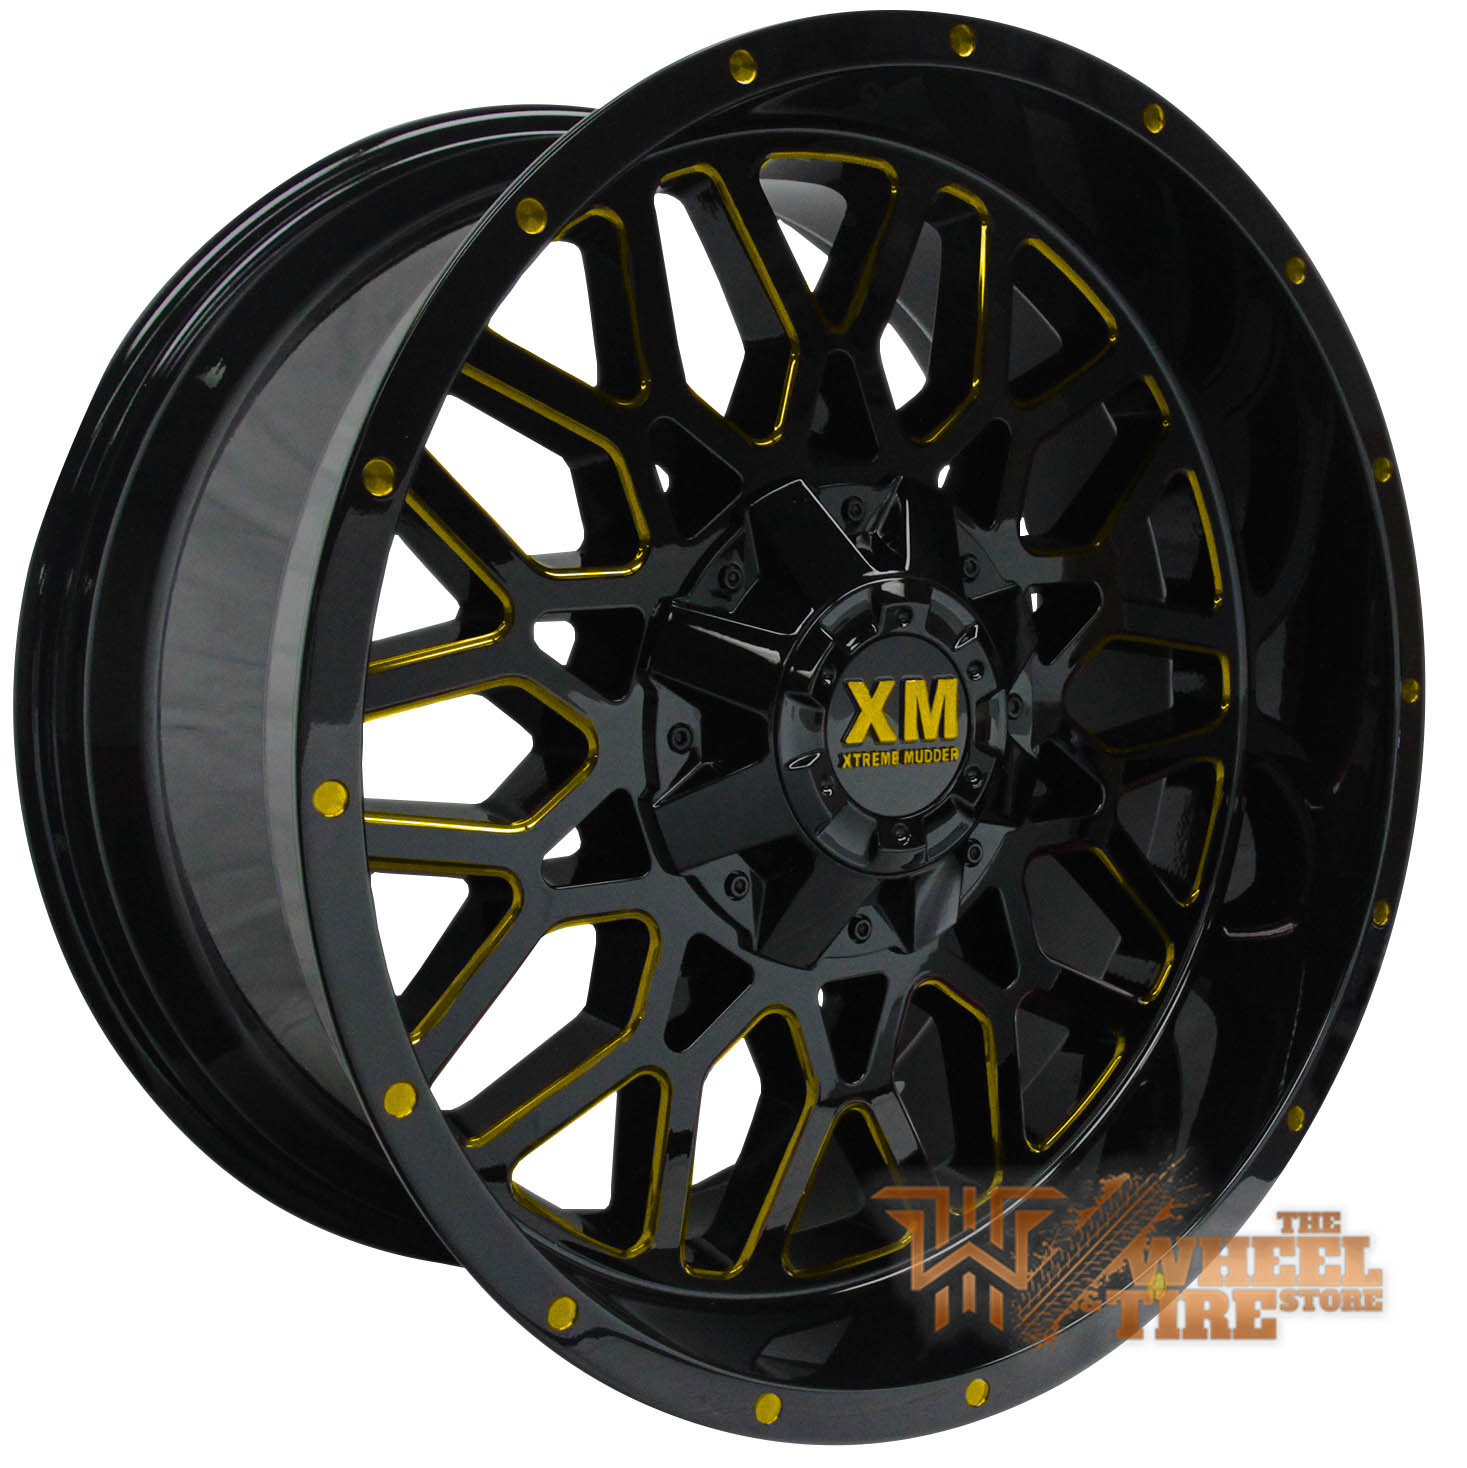 XTREME MUDDER XM-328 Wheel in Gloss Black Yellow Milled (Set of 4)